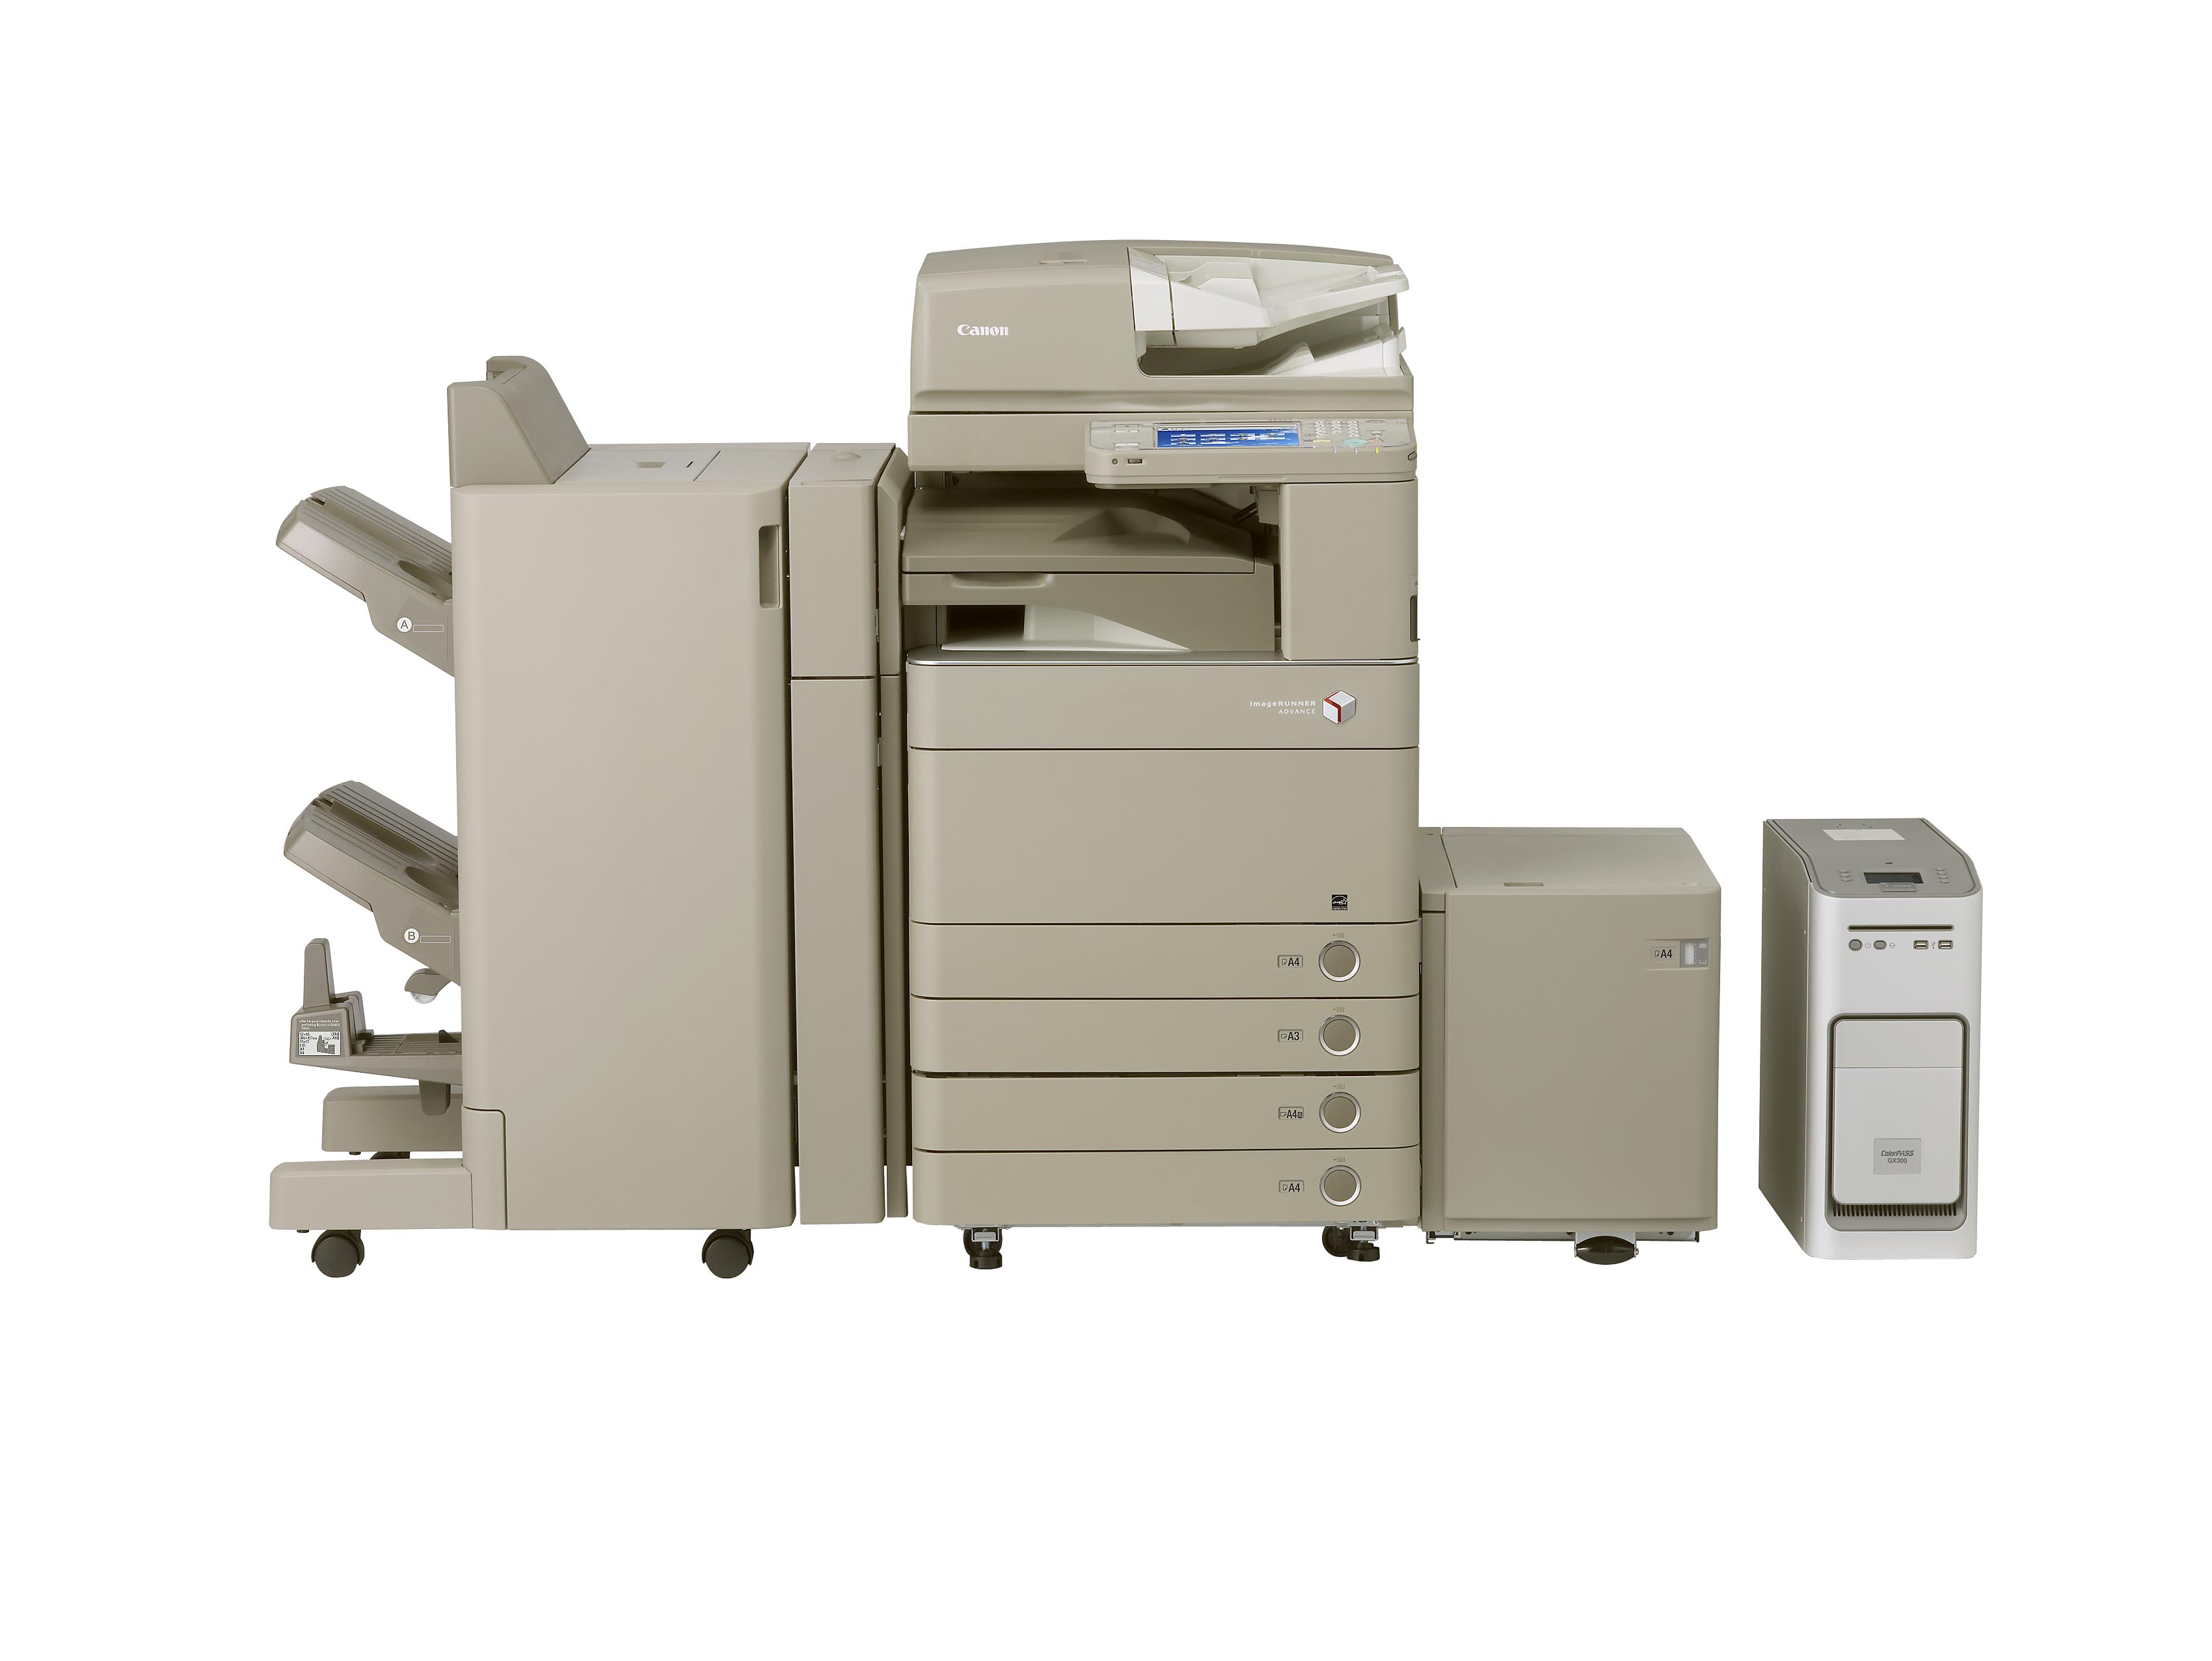 A one-stop shop for your office documenting needs, the Canon imageRunner Advance C5051 is efficient and accessible by multiple users from anywhere in the office.